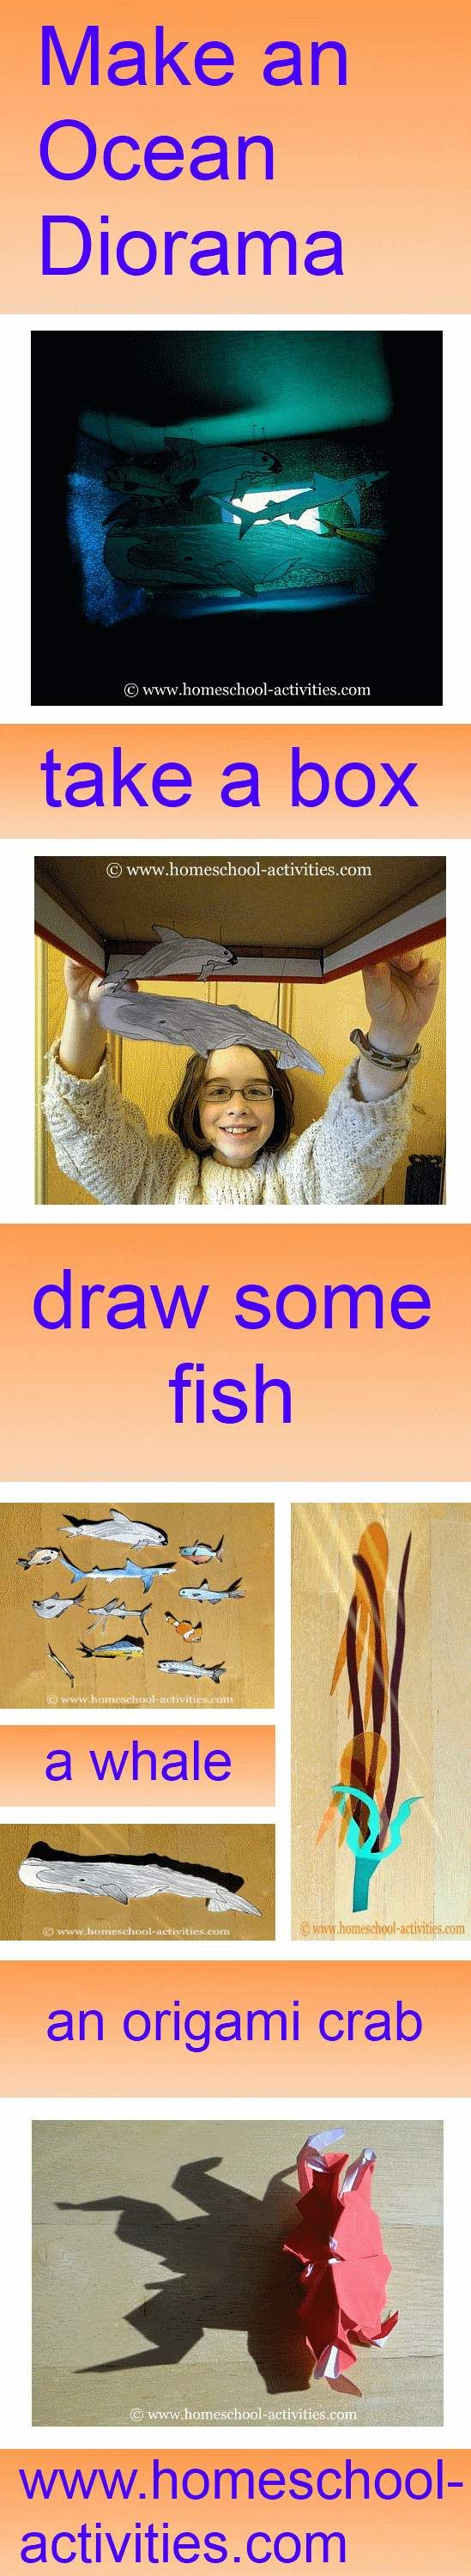 Make an ocean #diorama for kids from a shoe box.  Fun ideas from one of the very few second generation homeschooling families. www.homeschool-activities.com/ocean-diorama.html